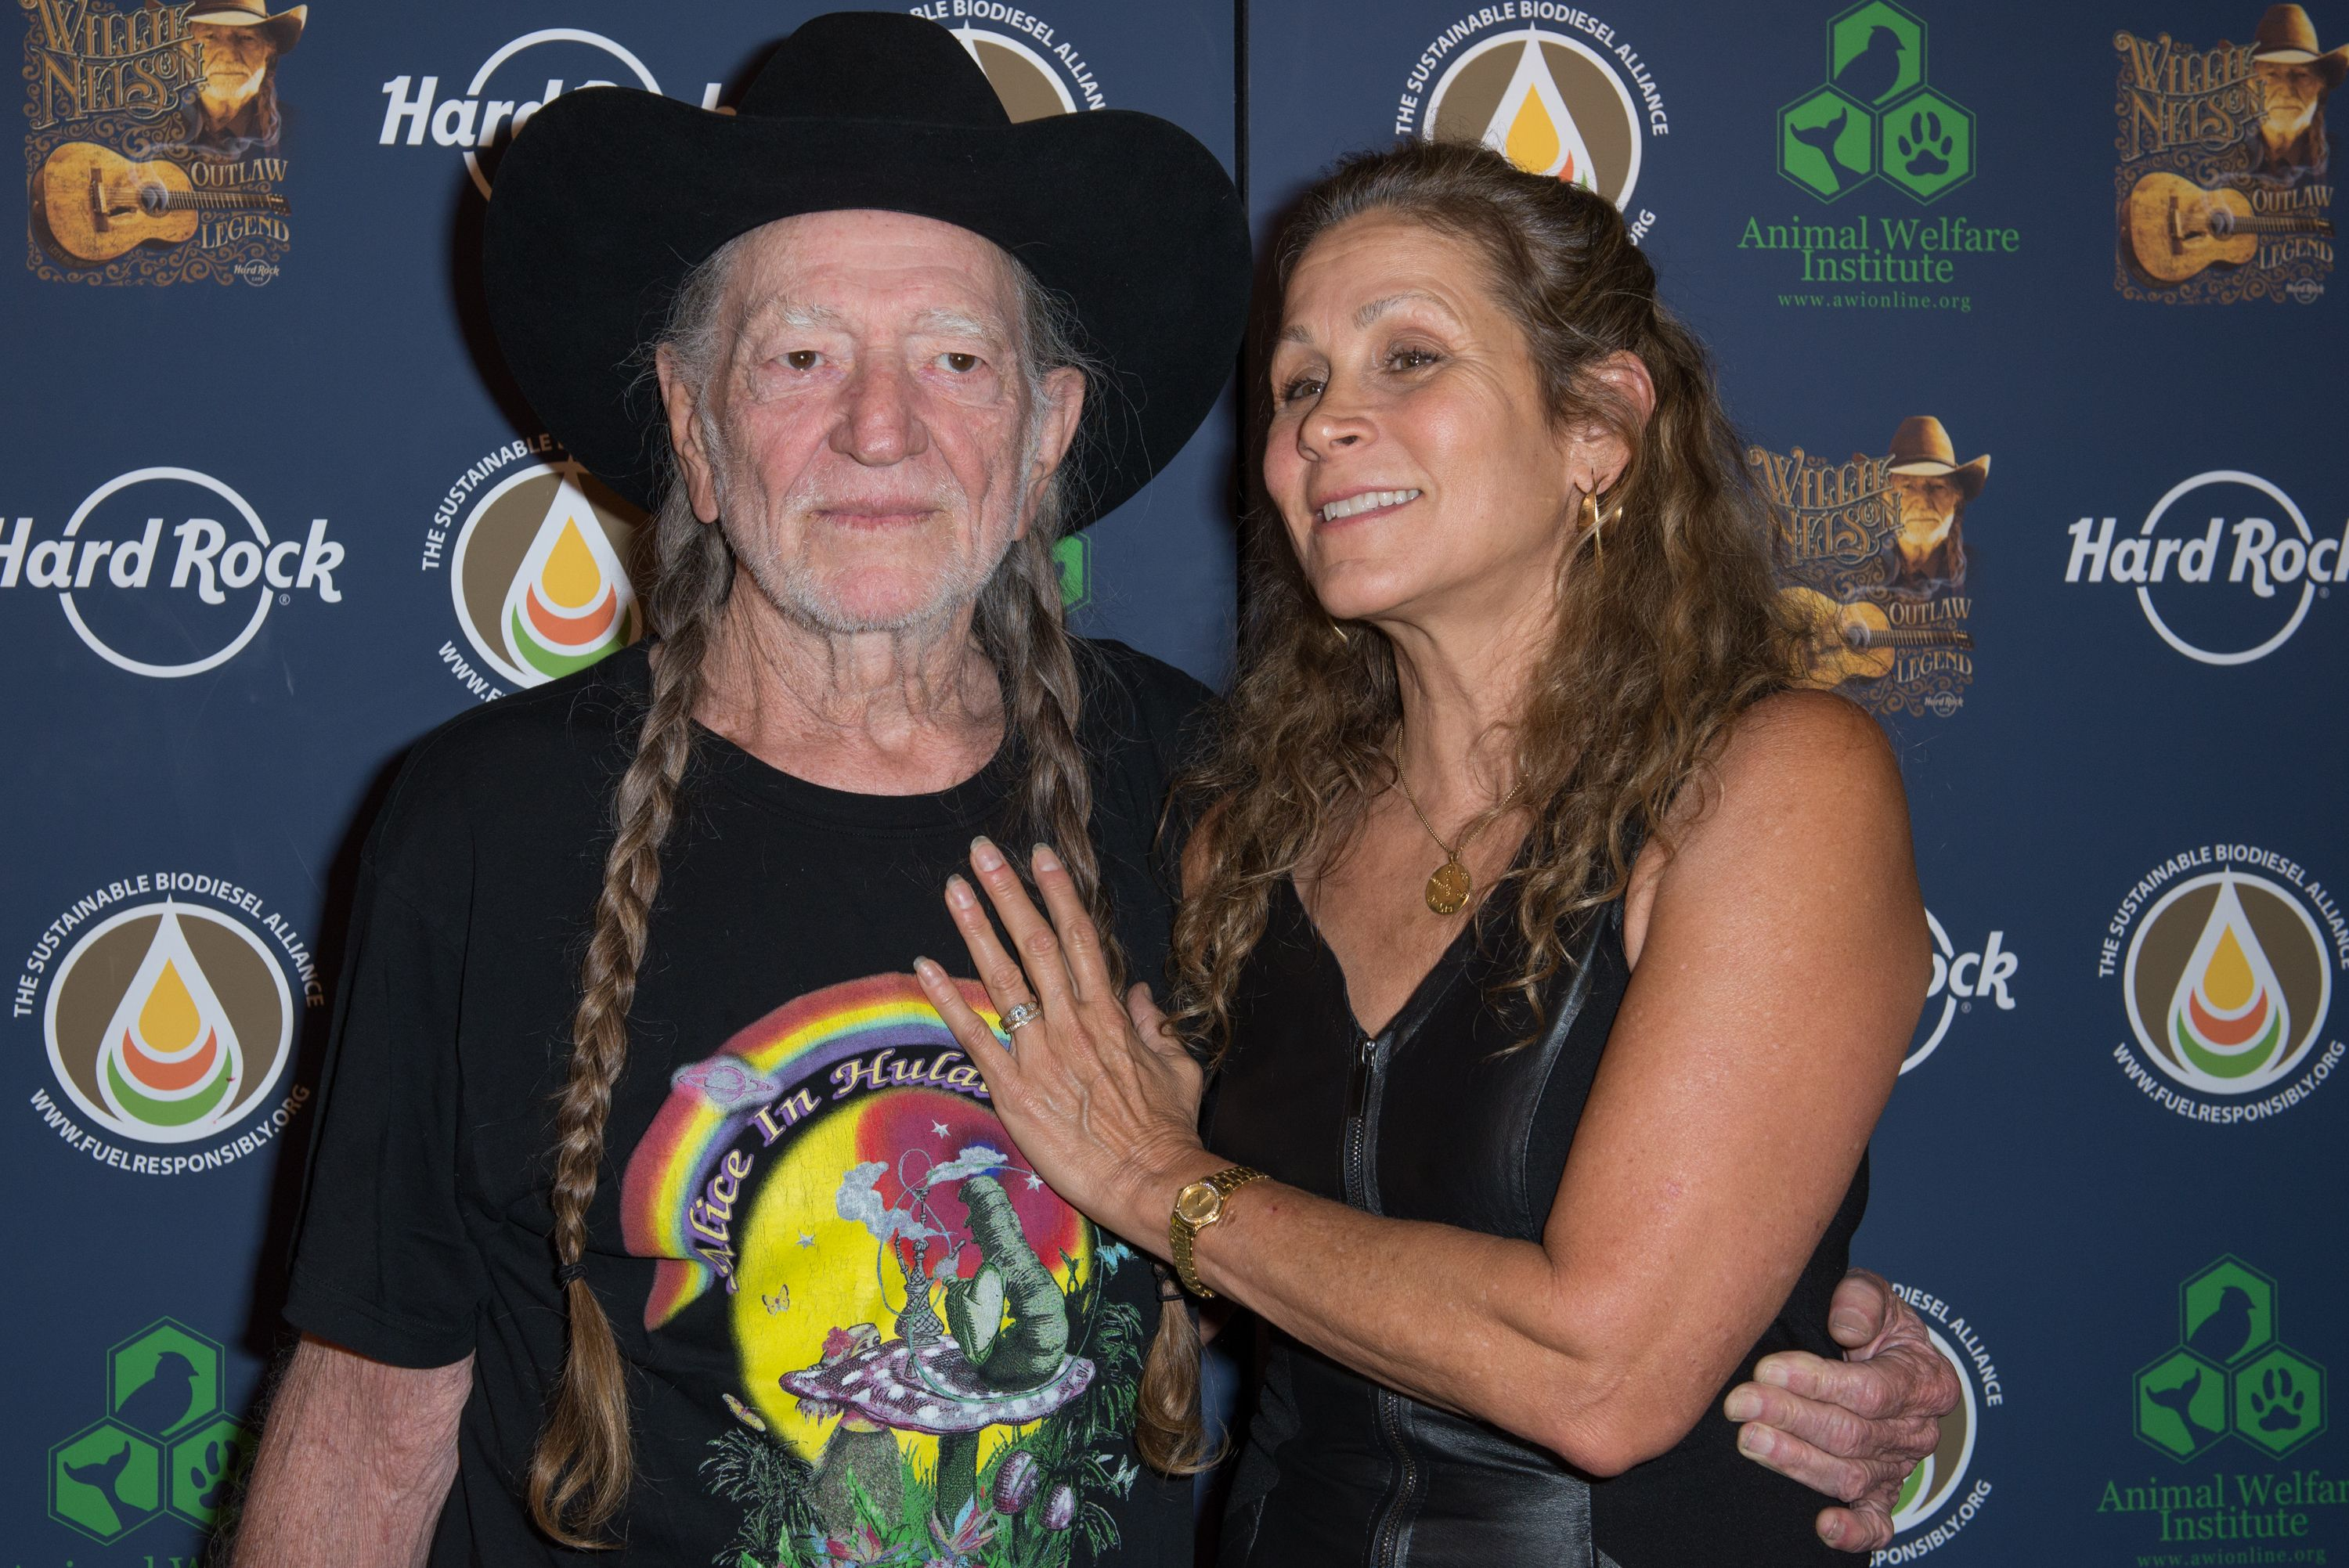 Willie Nelson with wife Annie D'Angelo at Hard Rock International's Wille Nelson Artist Spotlight Benefit Concert at Hard Rock Cafe in New York City, New York | Photo: Mike Pont/Getty Images